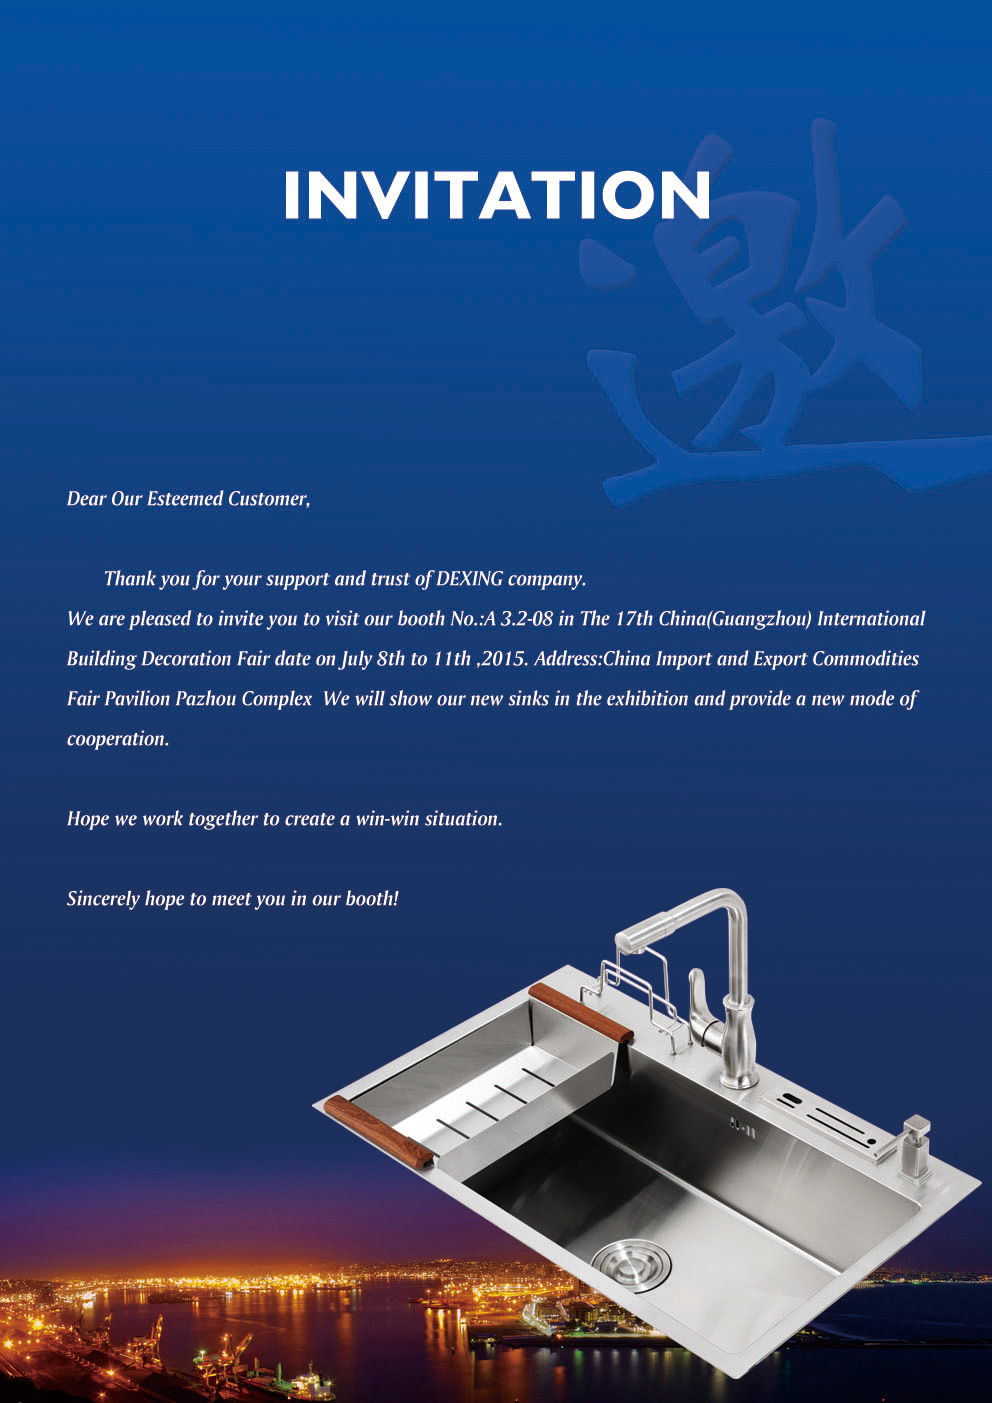 Invitation To Exhibition Booth : We are pleased to invite you visit our booth no a